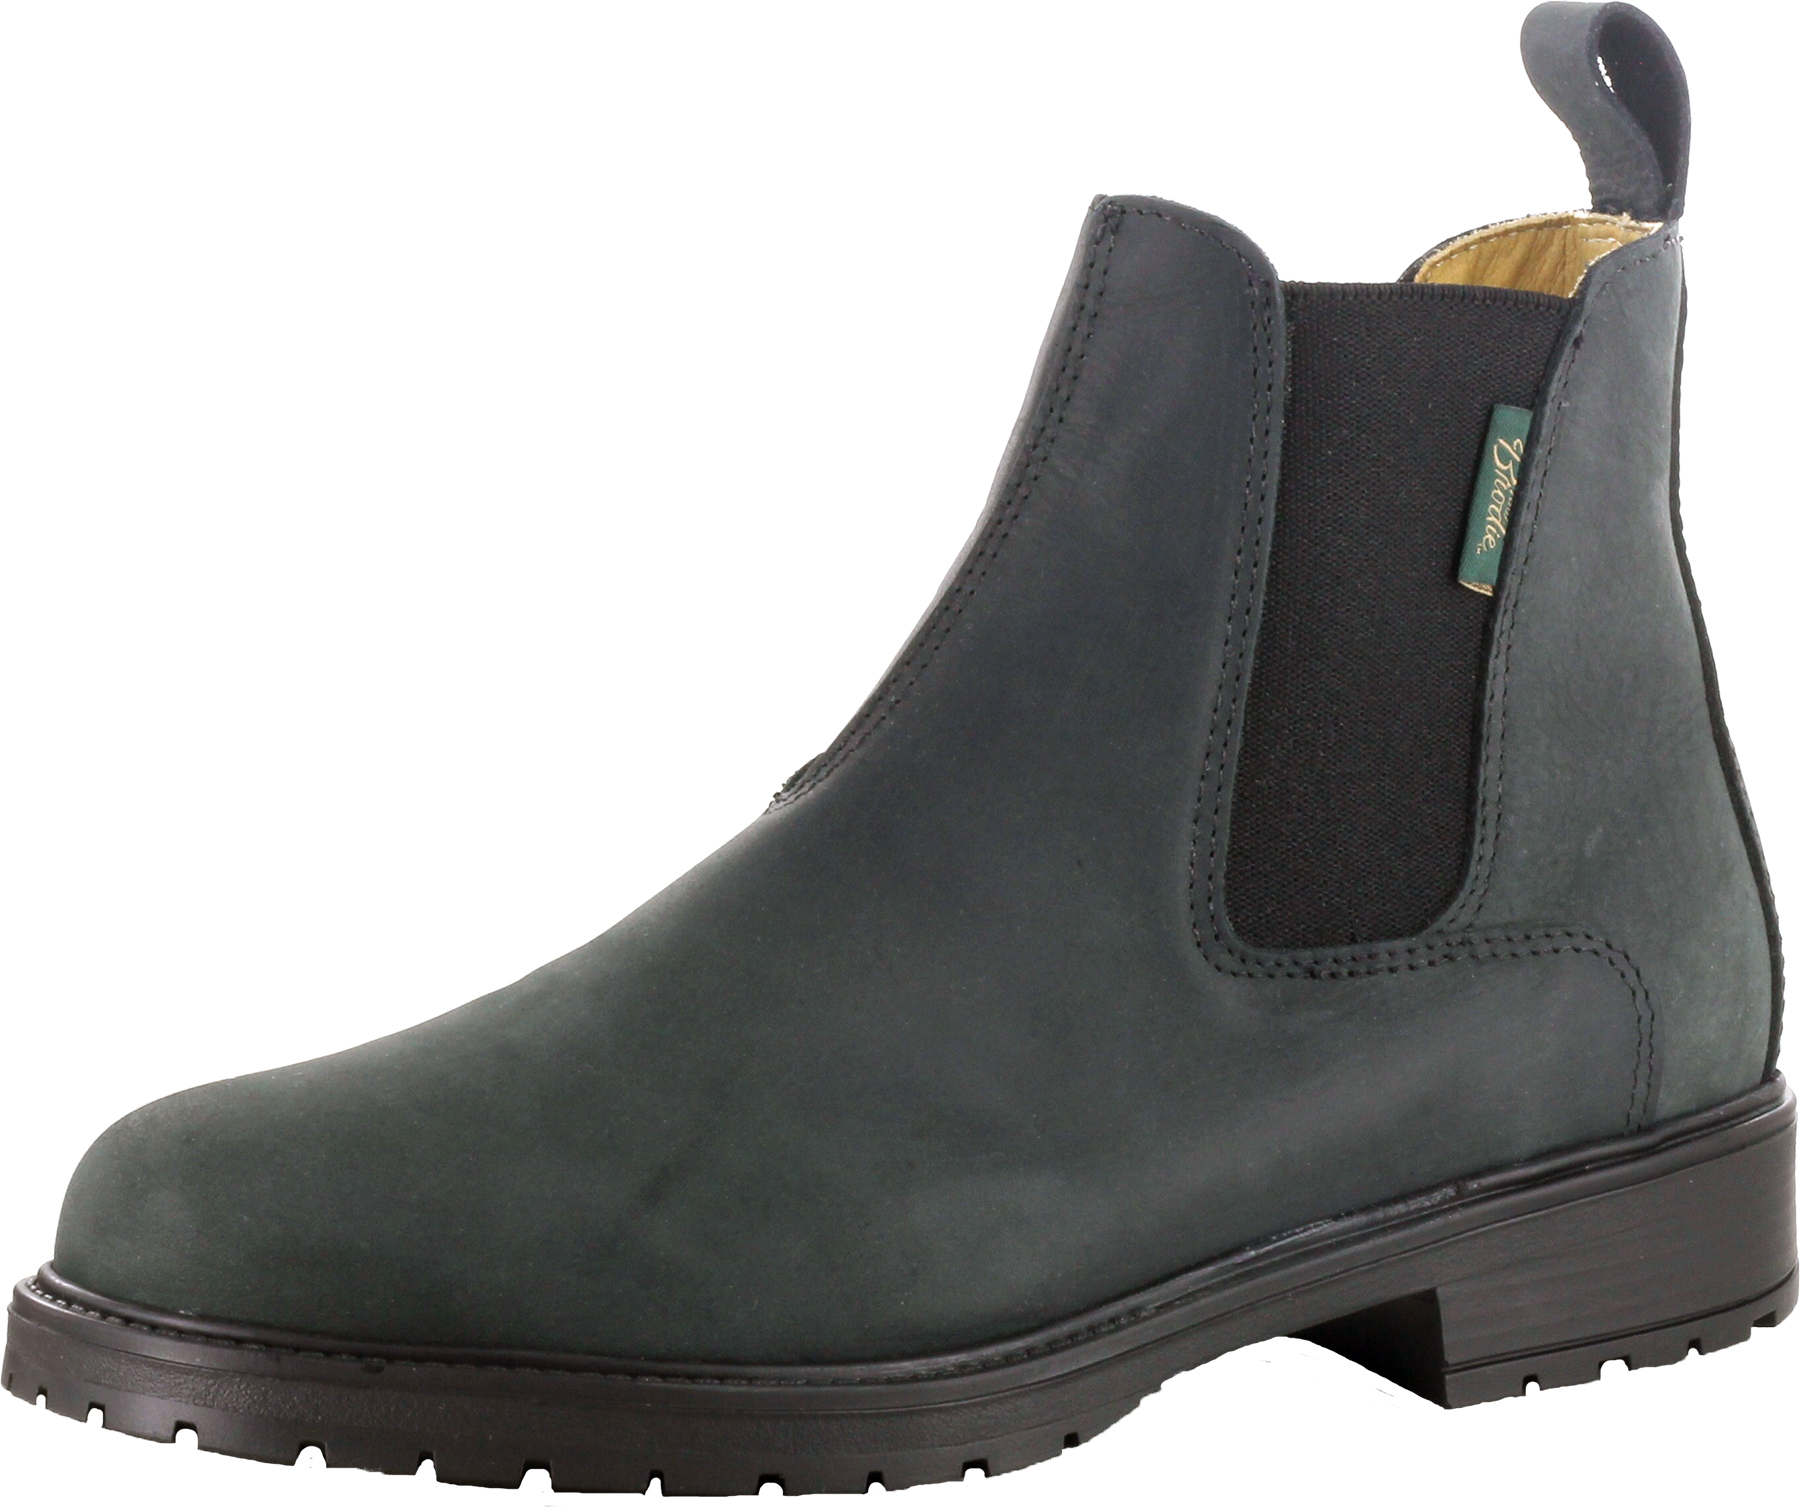 Men's Paul Brodie Double Gore Boot - Charcoal Grey